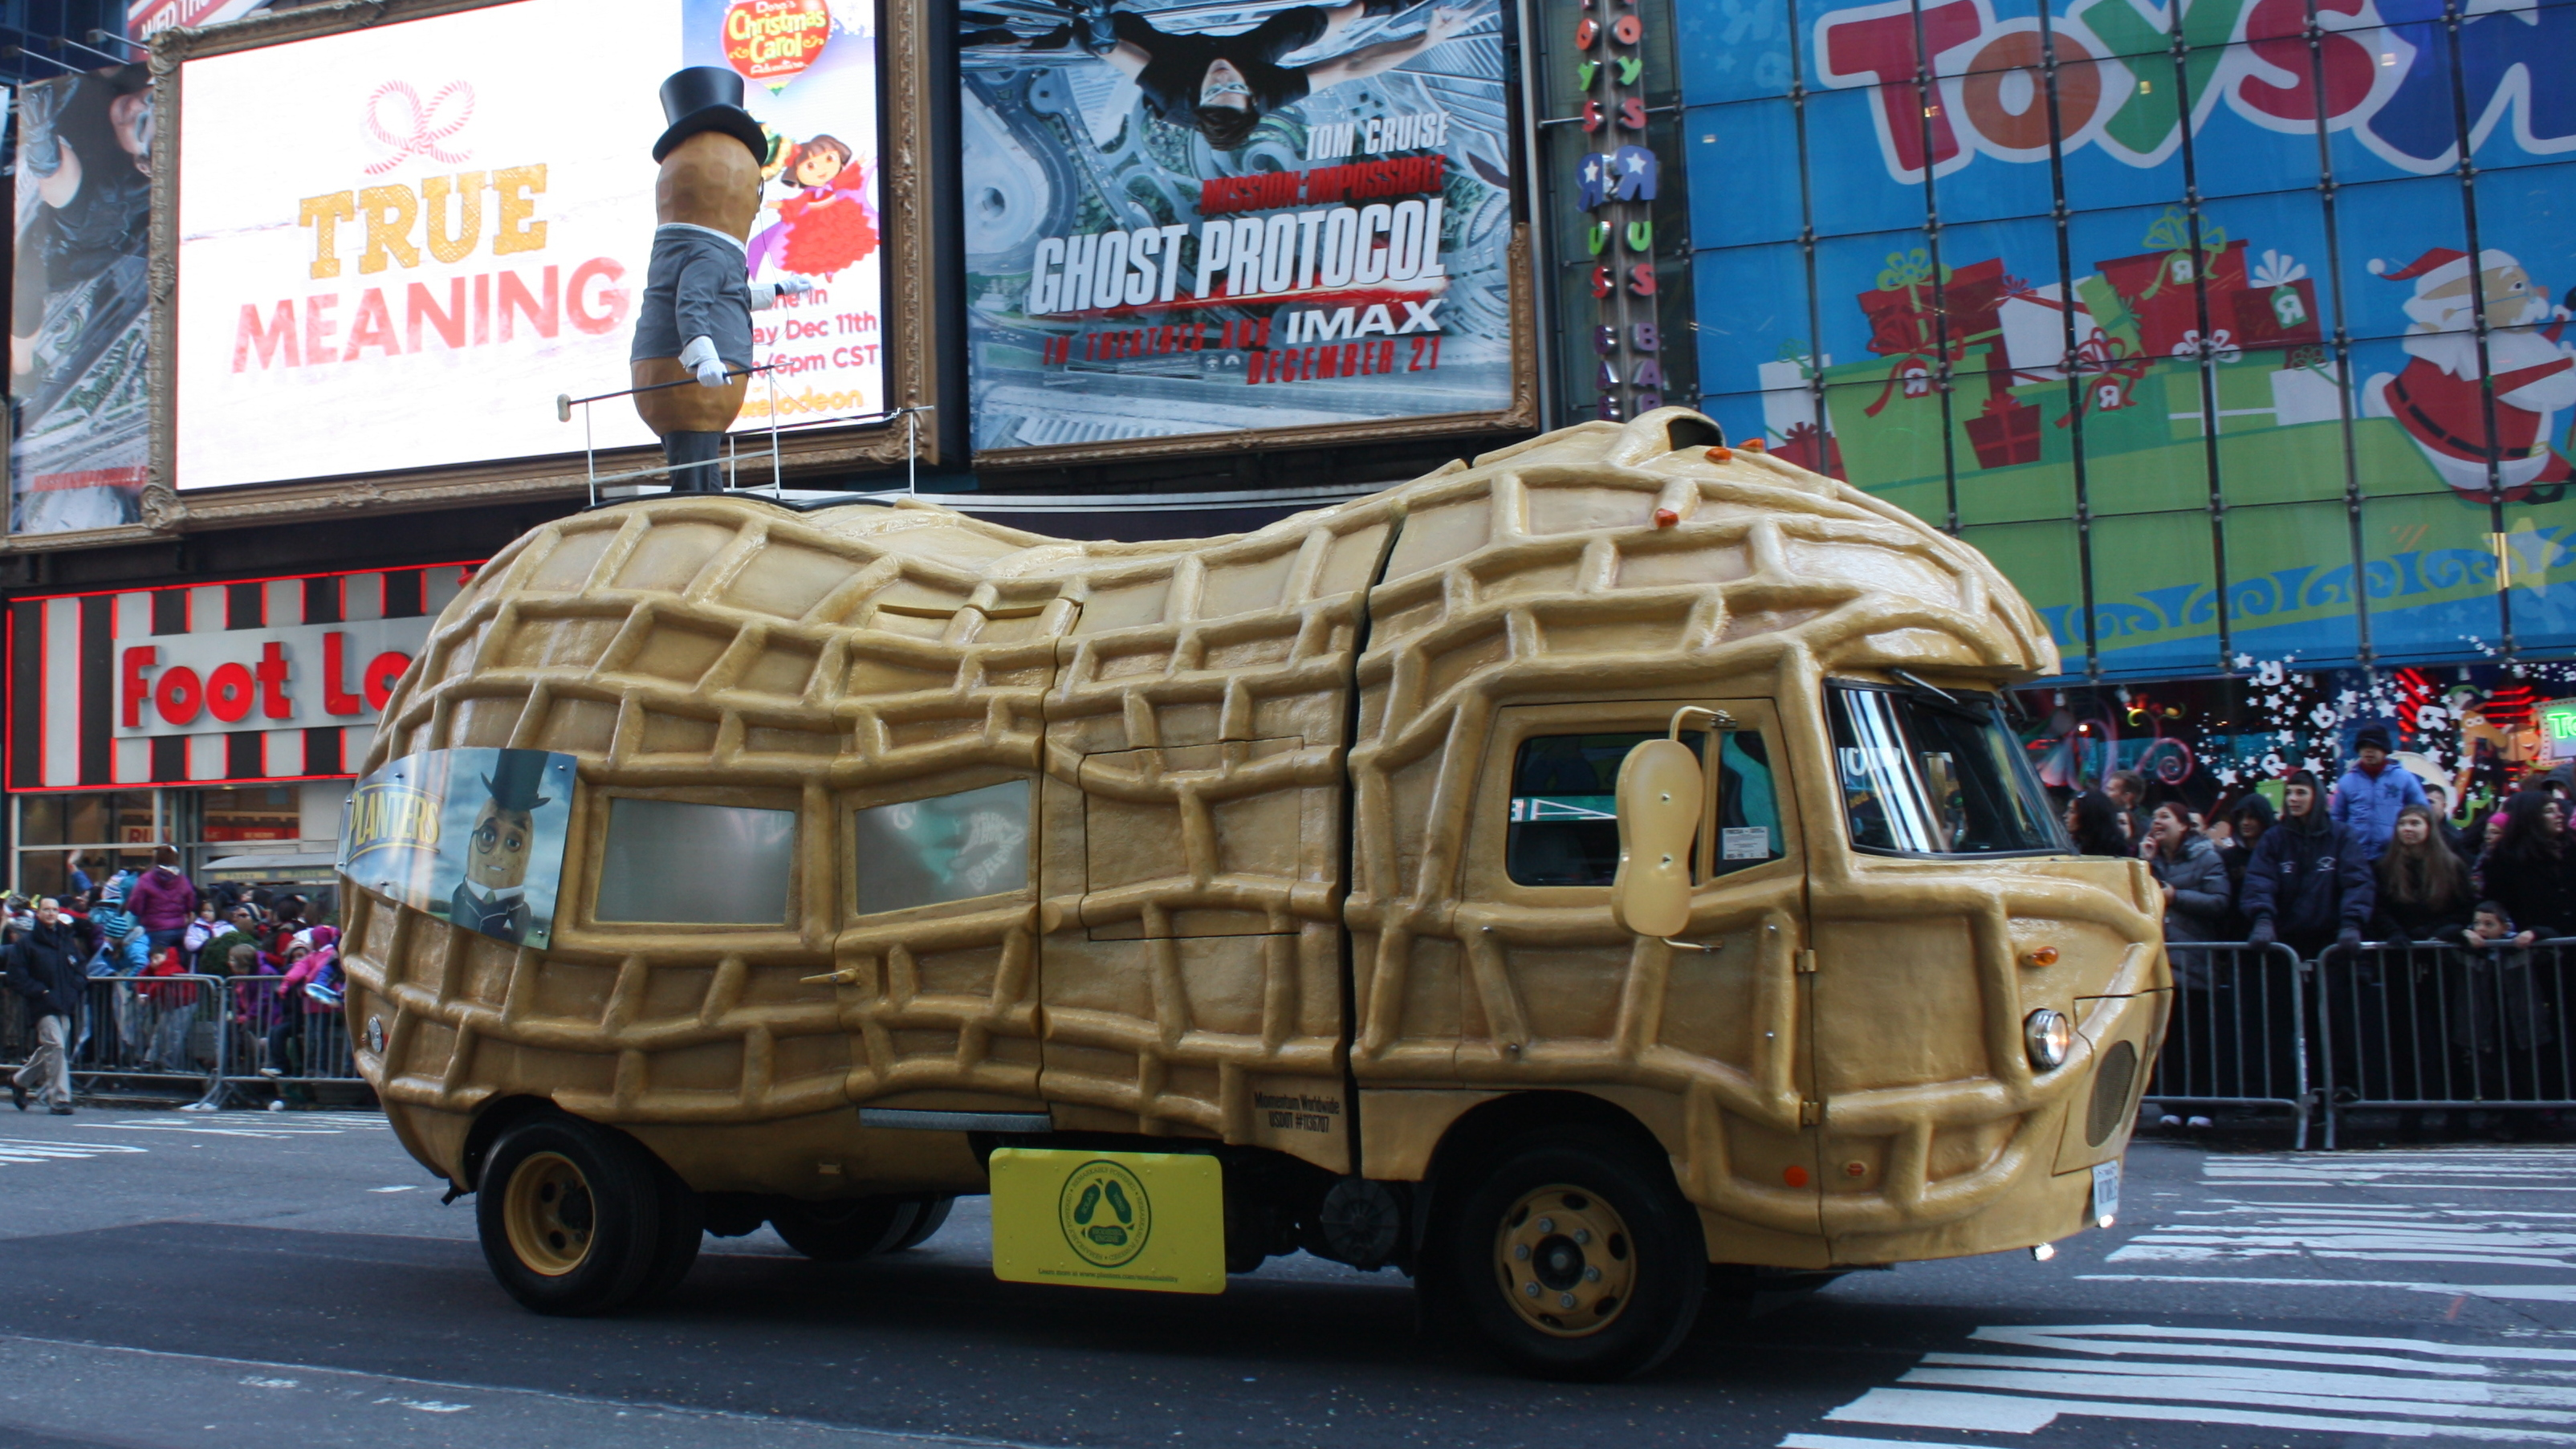 The Planters Nutmobile, seen here taking a starring turn at the Macy's Thanksgiving Day Parade, is hitting the road for a yearlong trip across the U.S. Photo: Peter Roan/Flickr